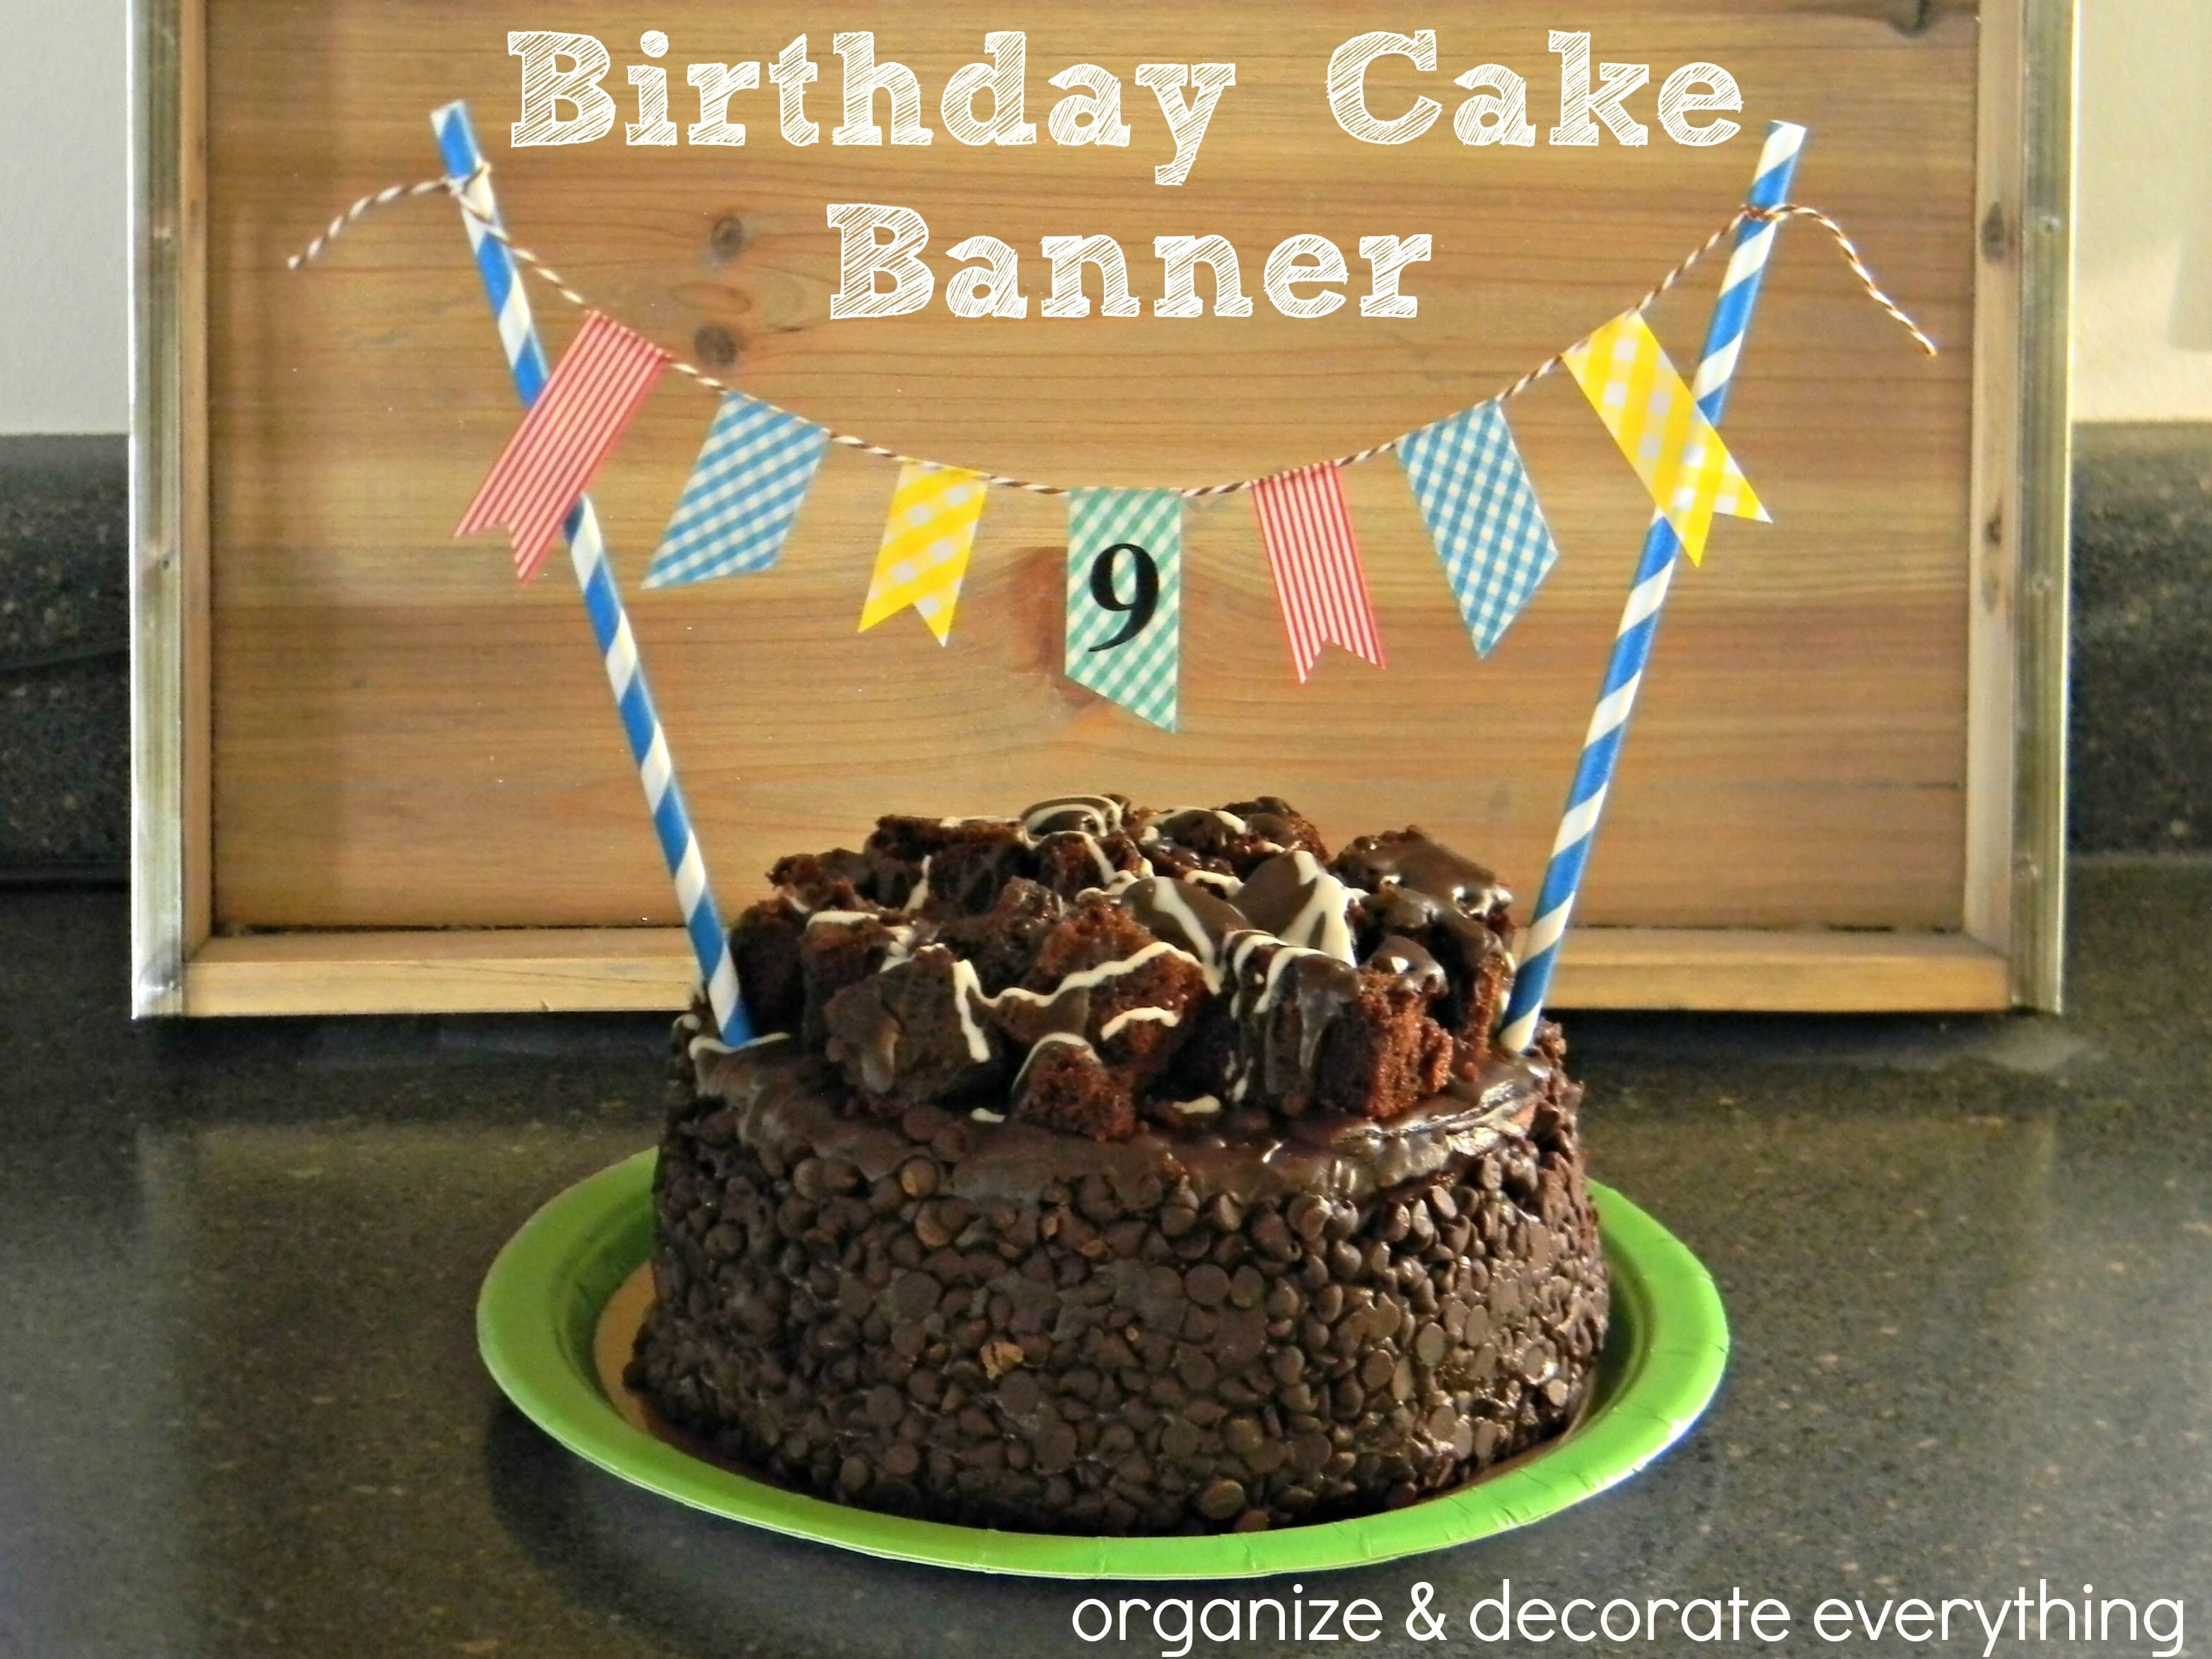 birthday cake banner by organize and decorate everything on cake birthday banner